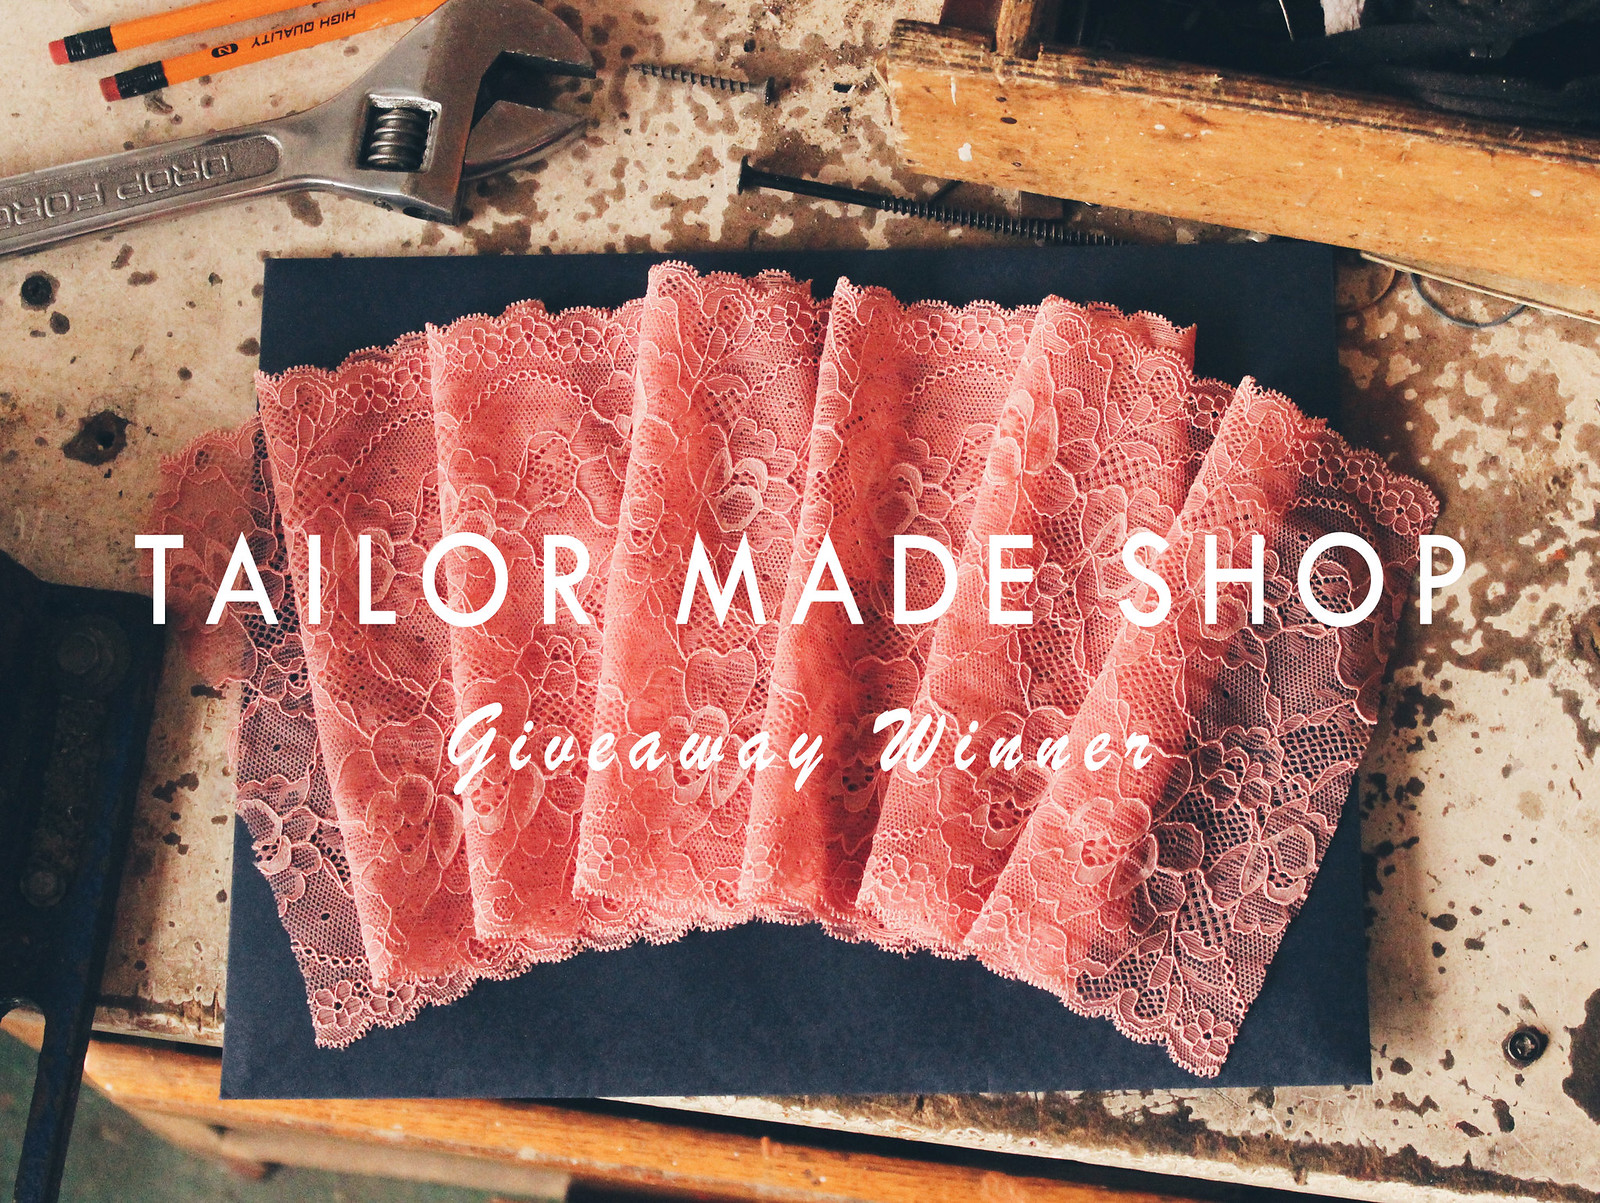 Tailor Made Shop Giveaway Winner